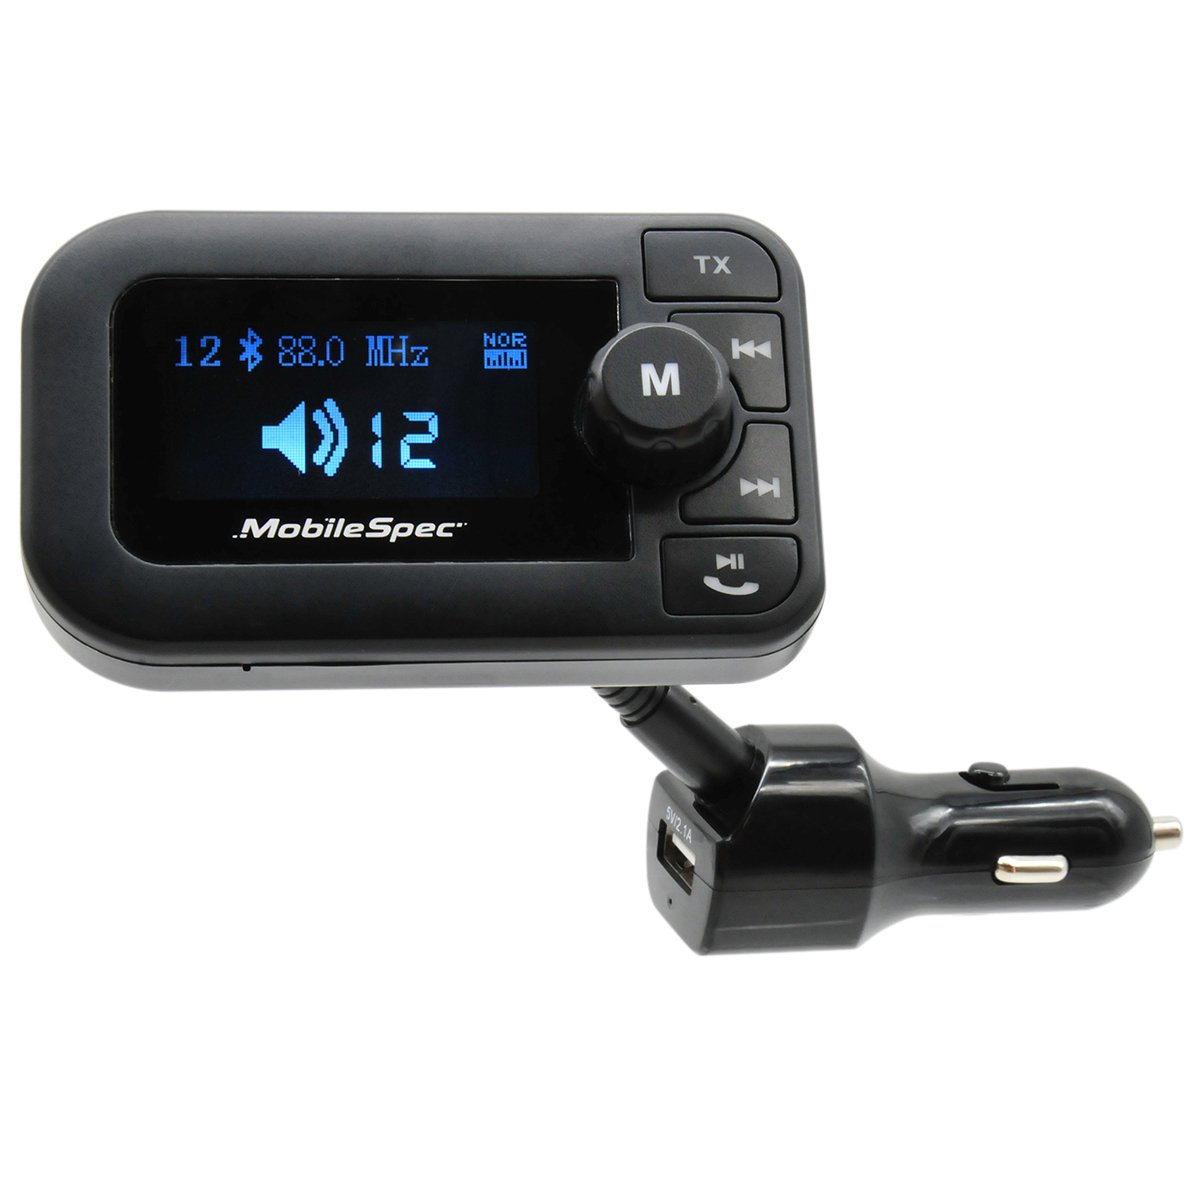 Mobile Spec 12V Charger with 2.1A USB Port, FM Transmitter, Hands-free Mic, and Large LED Display